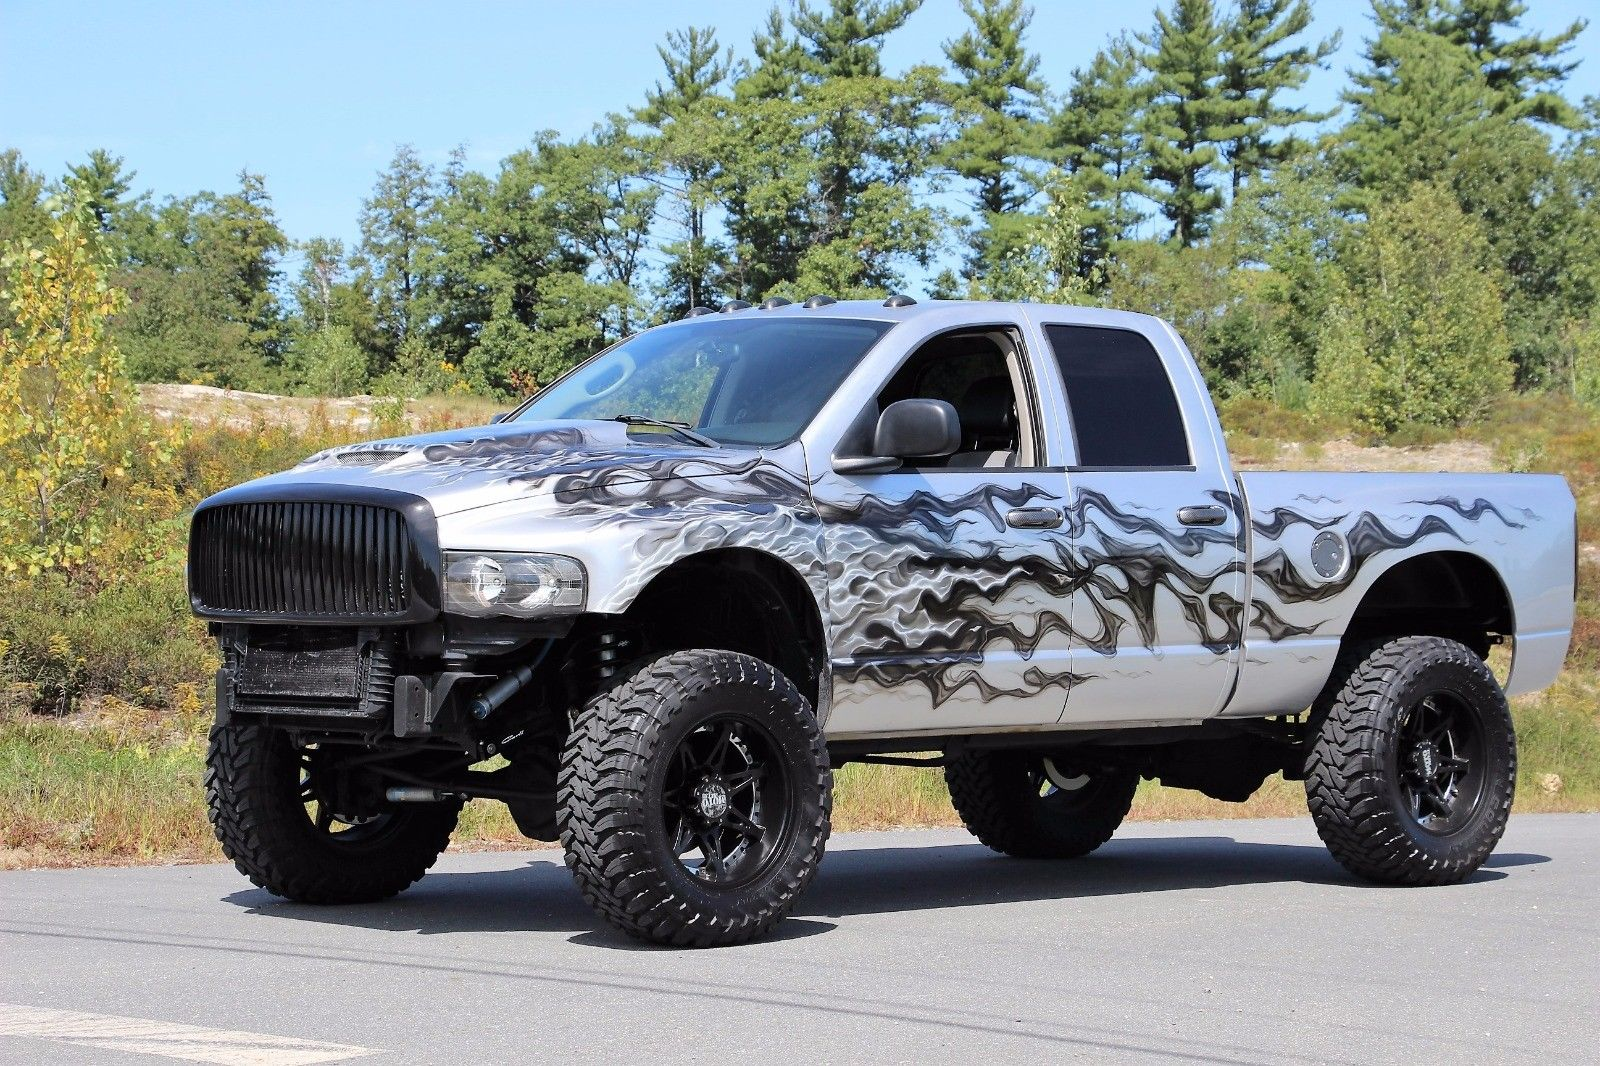 Show Truck 2005 Dodge Ram 3500 Laramie Lifted For Sale